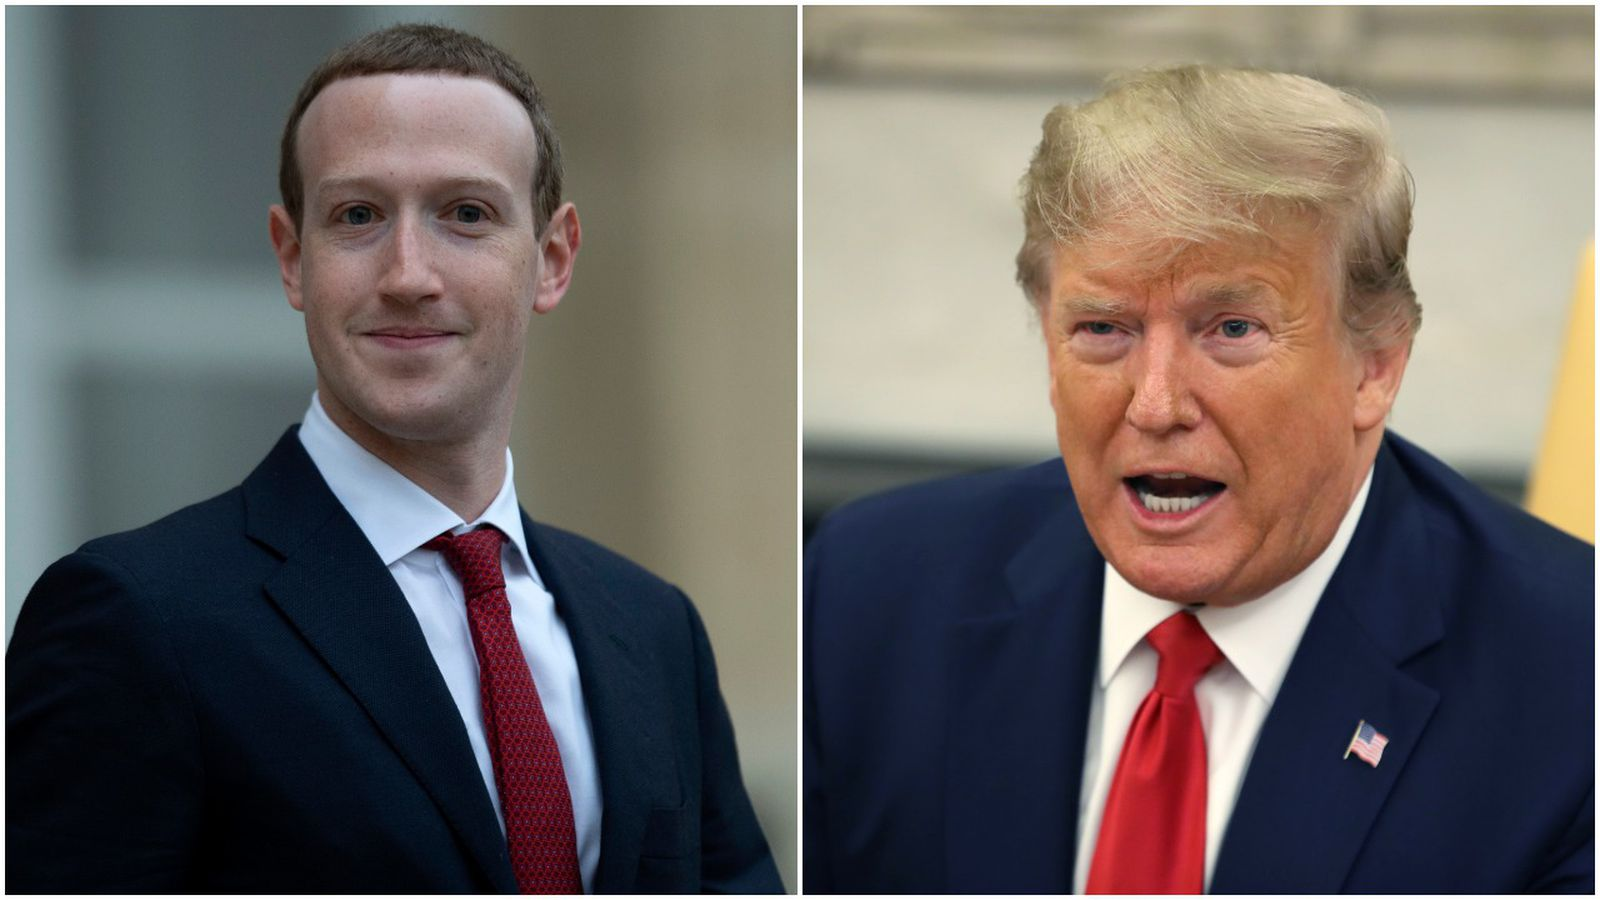 Facebook Says President Trump is Allowed to Lie on His Ads